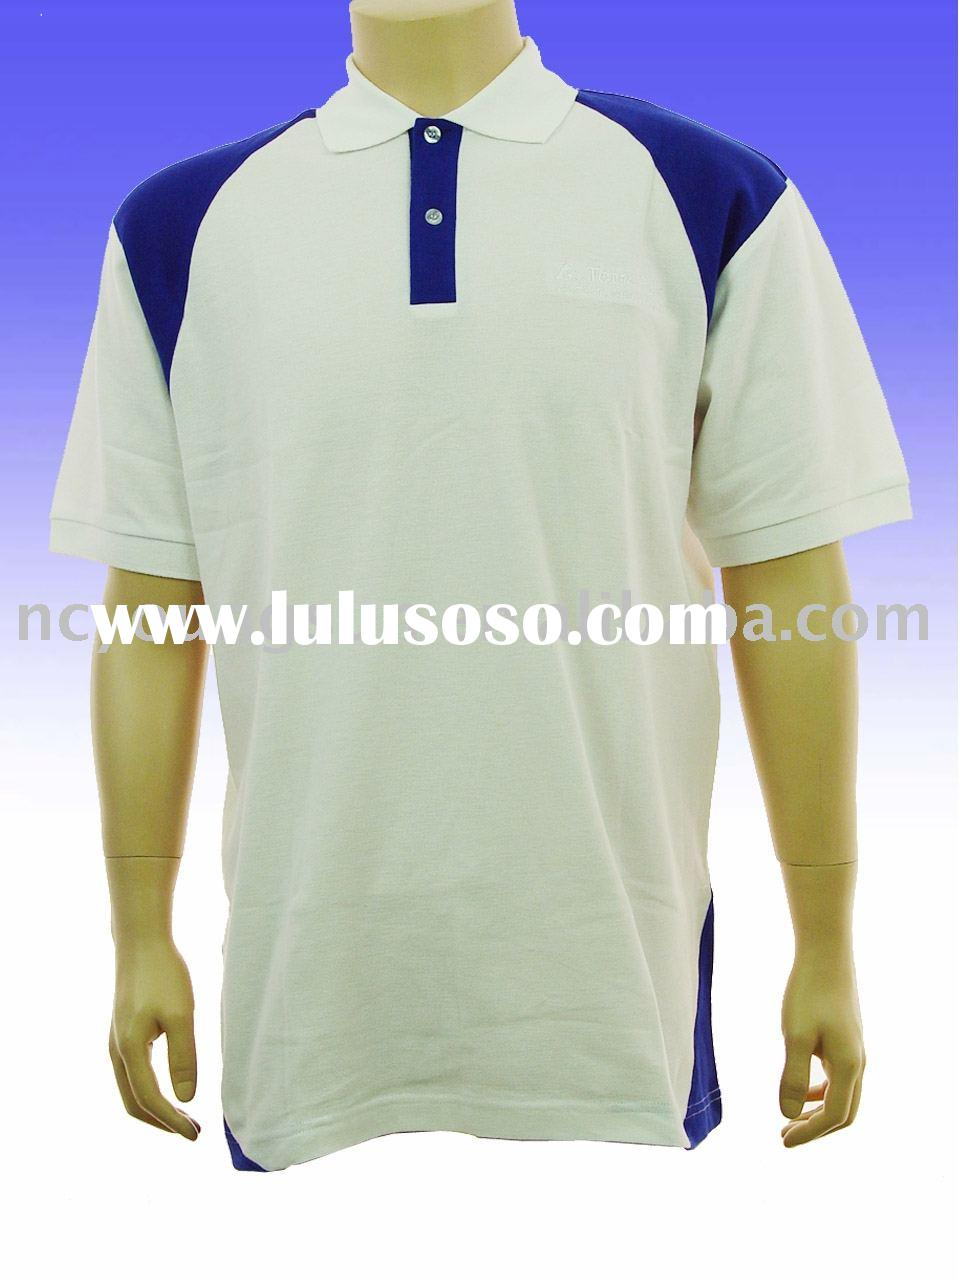 Golf shirt golf t shirt cotton t shirt sport clothes for Golf t shirts for sale